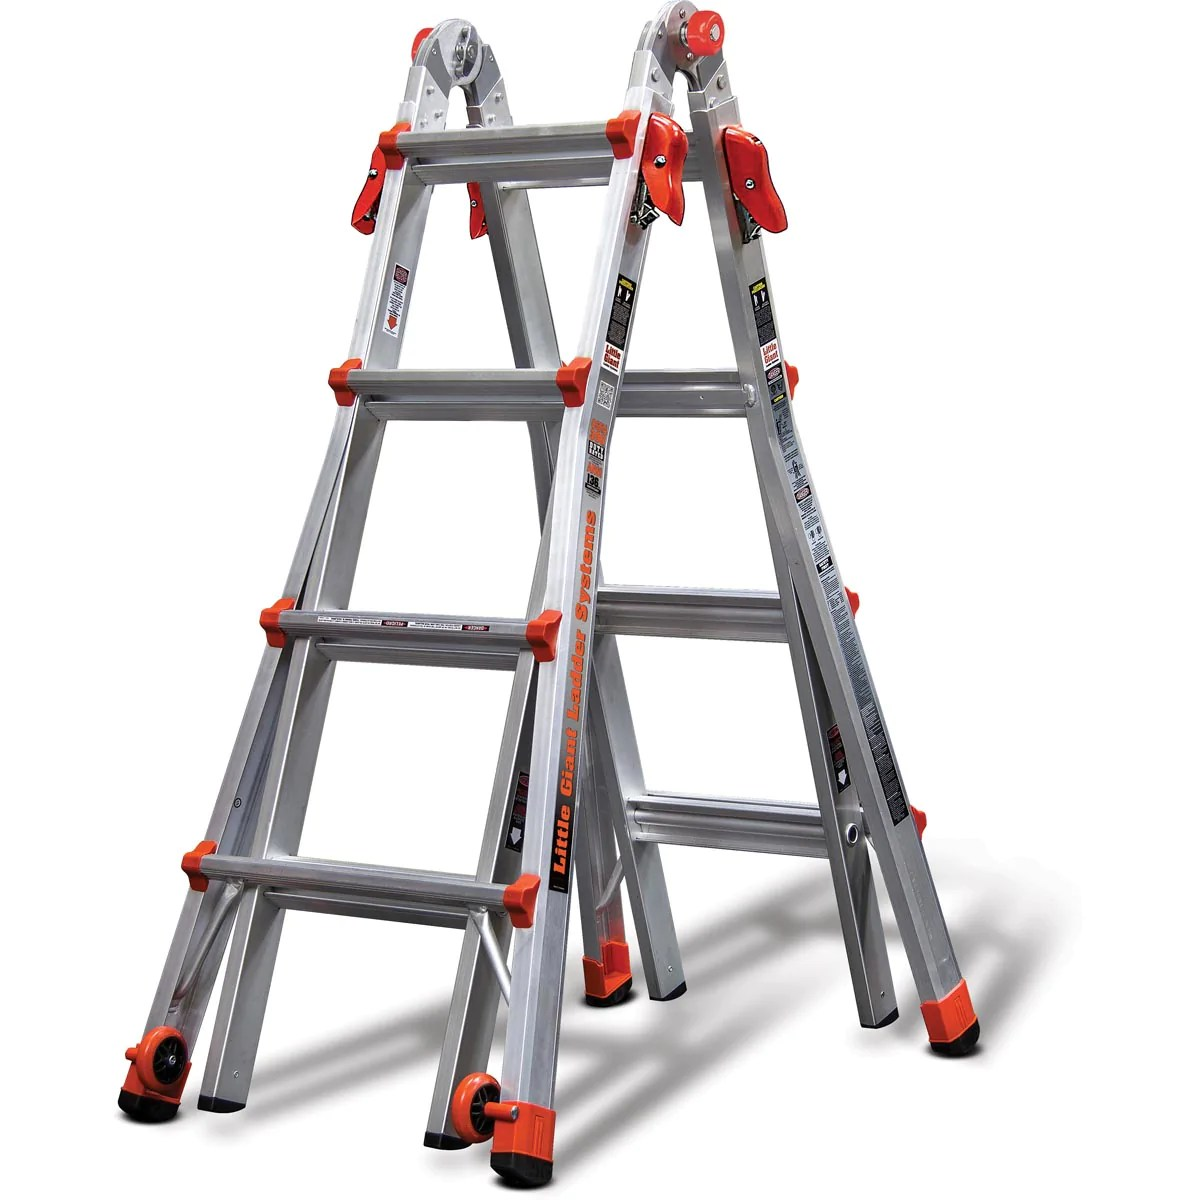 20' Ladder Home Depot Little Giant Velocity Ladder Type 1a Velocity Ladders